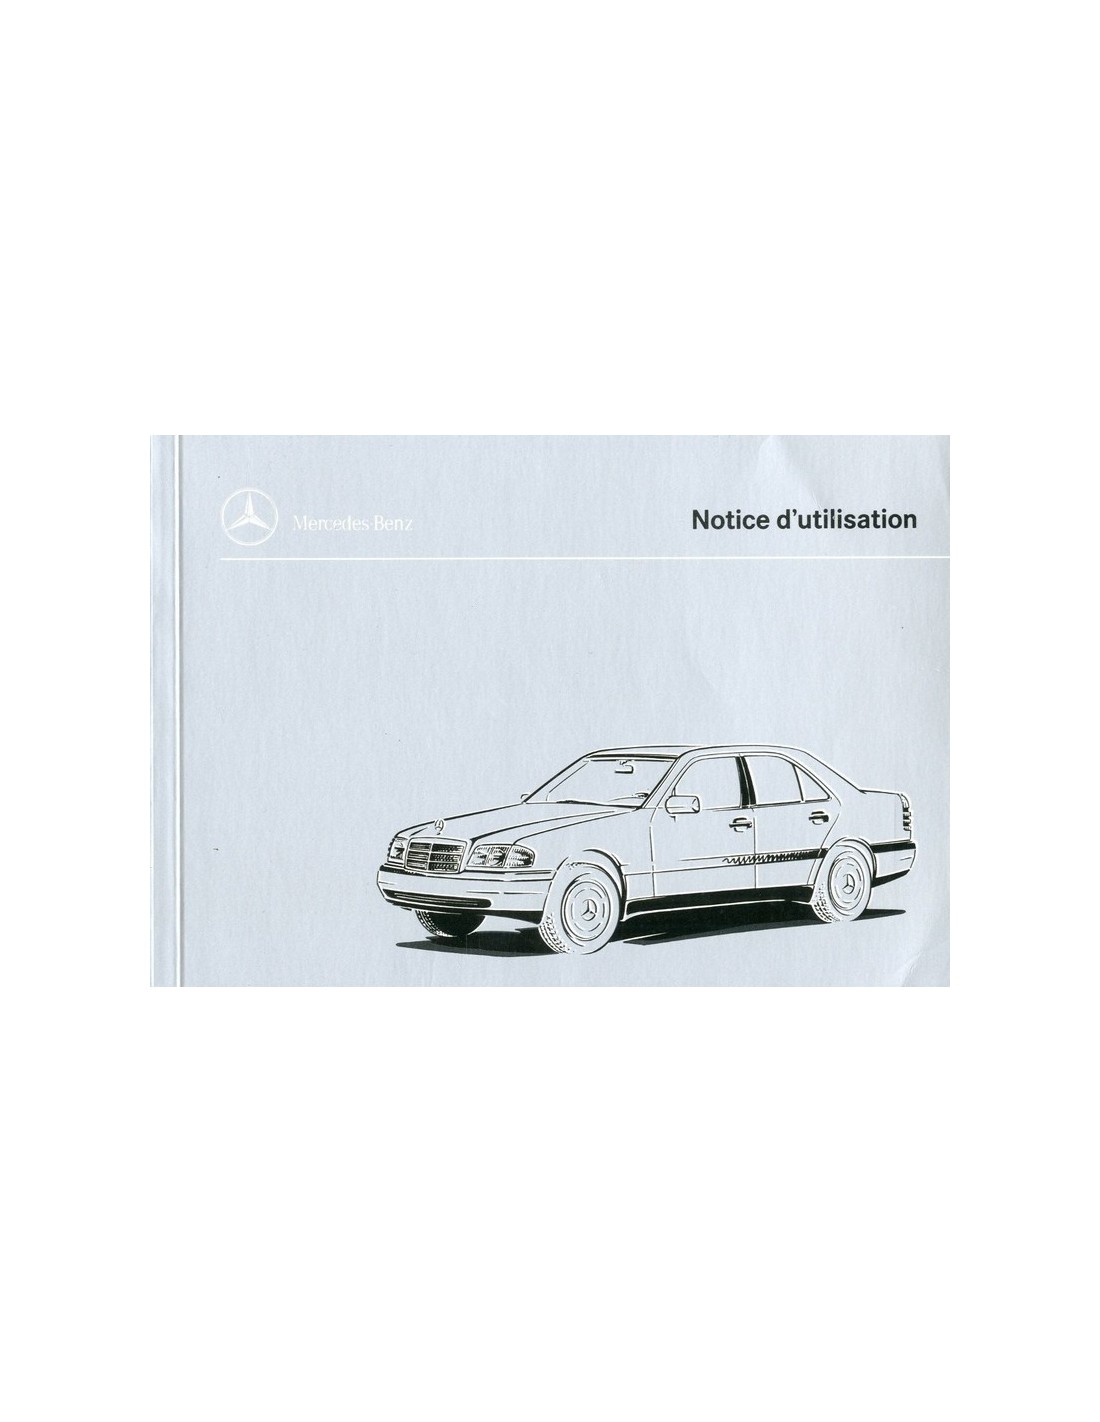 1993 mercedes benz c class owners manual transmition for 1998 mercedes benz c230 repair manual